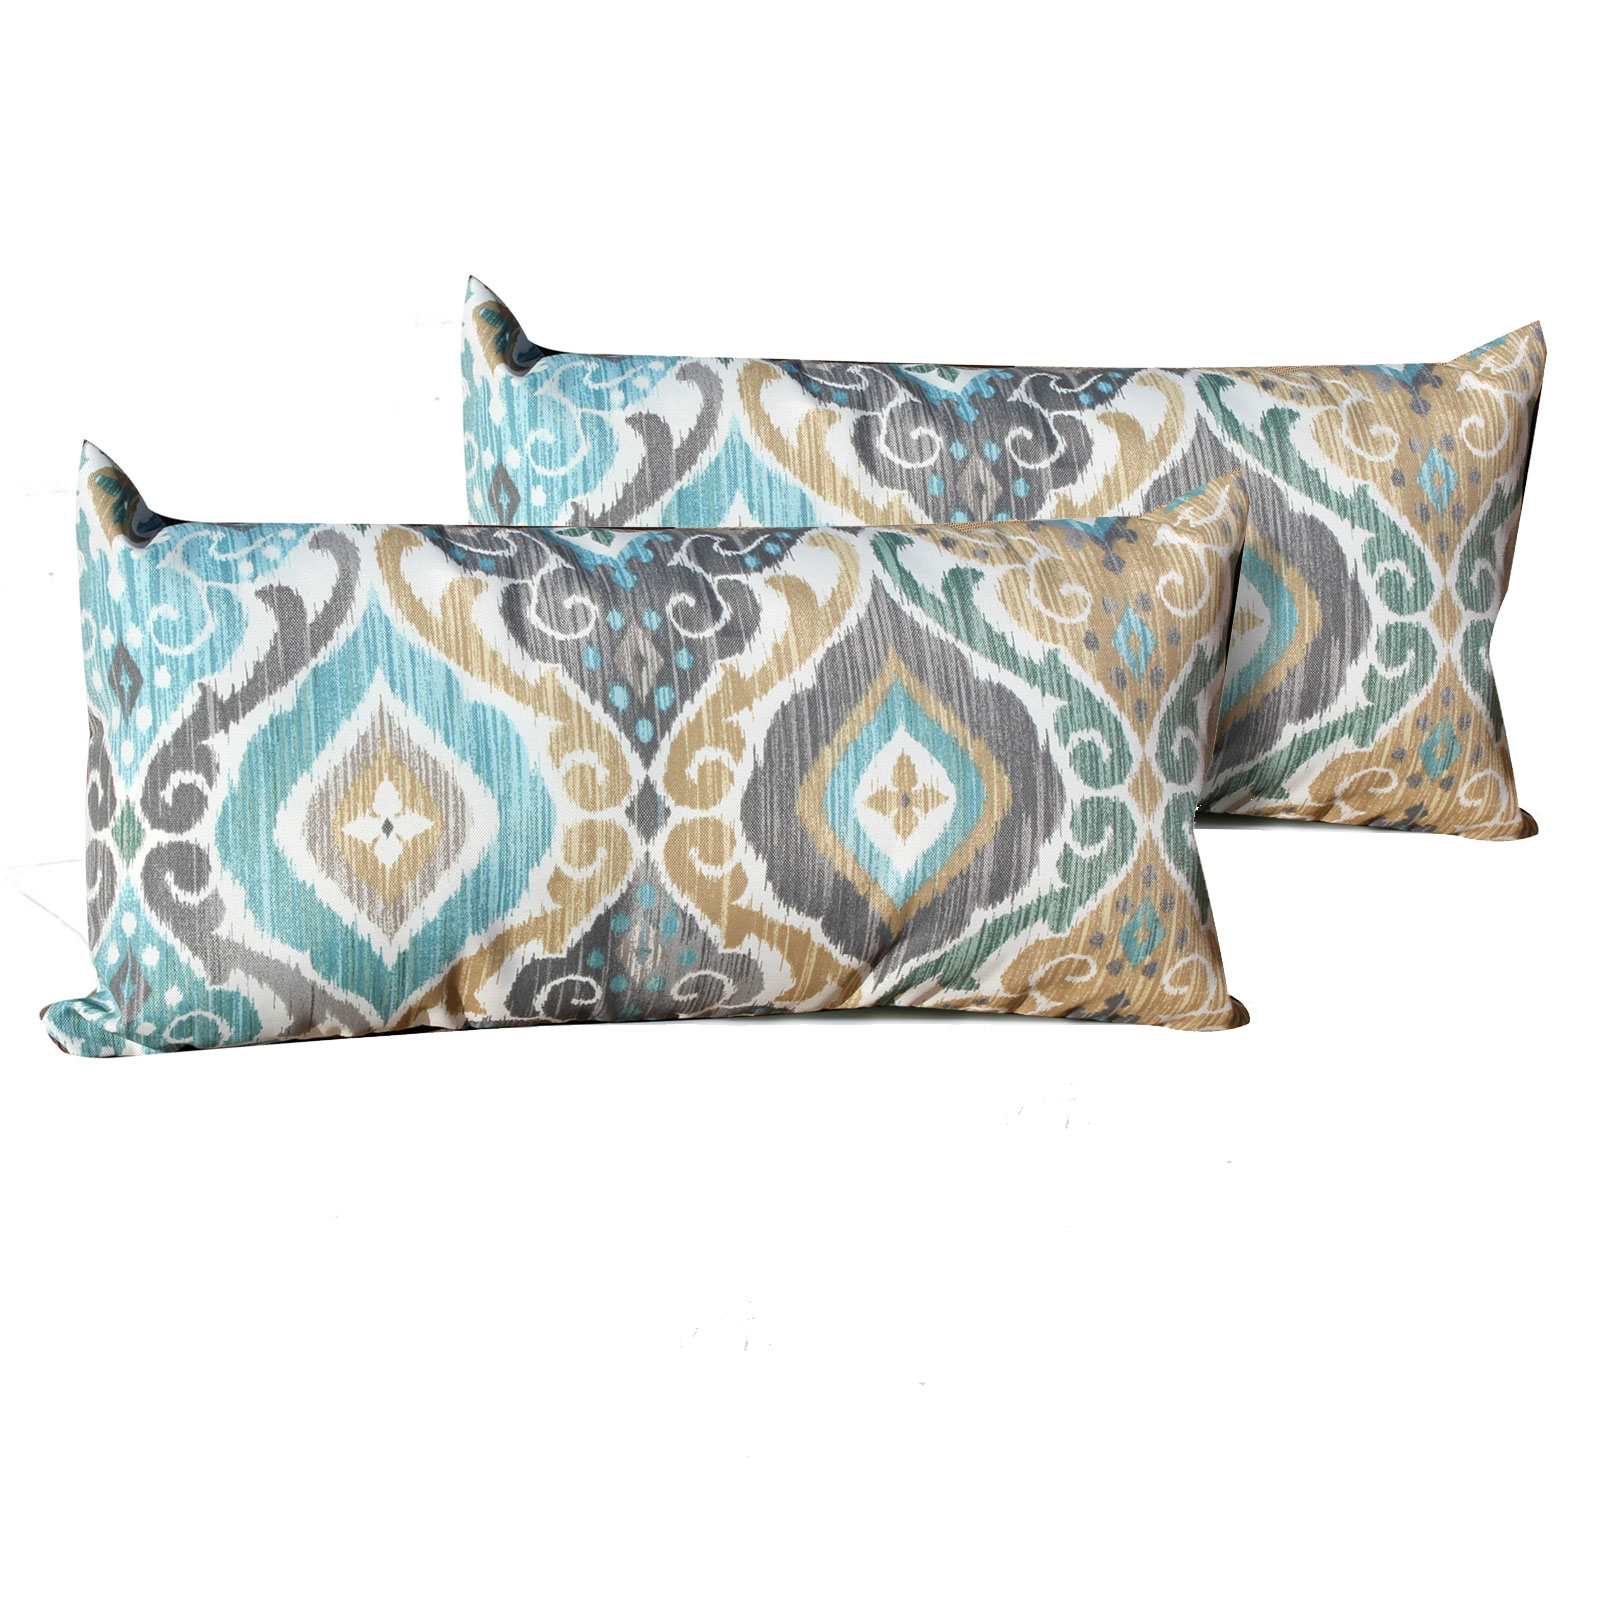 Outdoor Throw Pillows On Sale